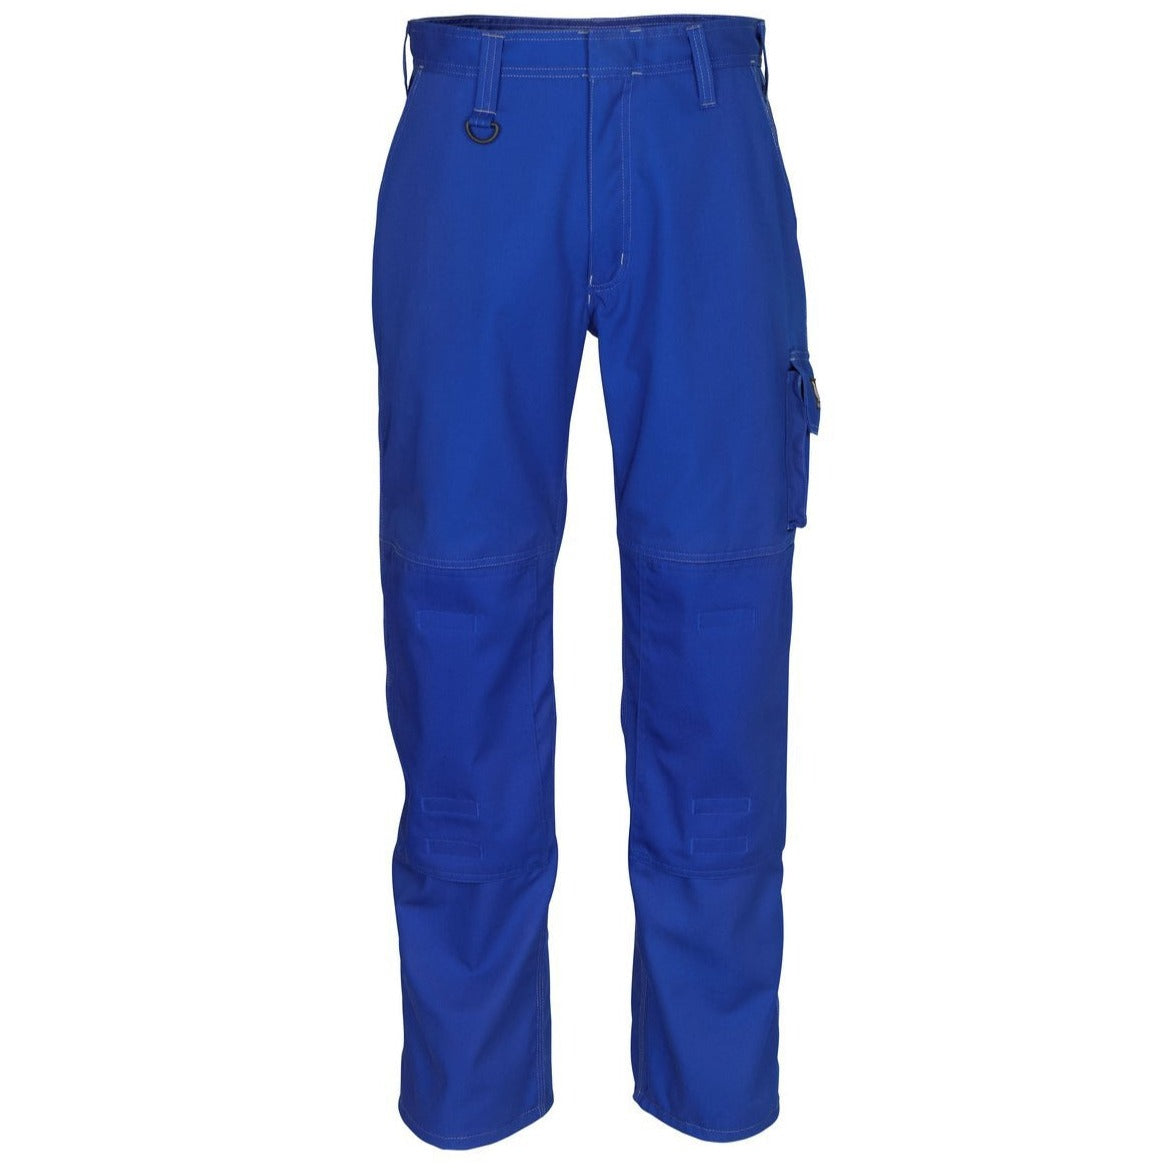 Mascot Biloxi Industry Trousers With Kneepad Pockets